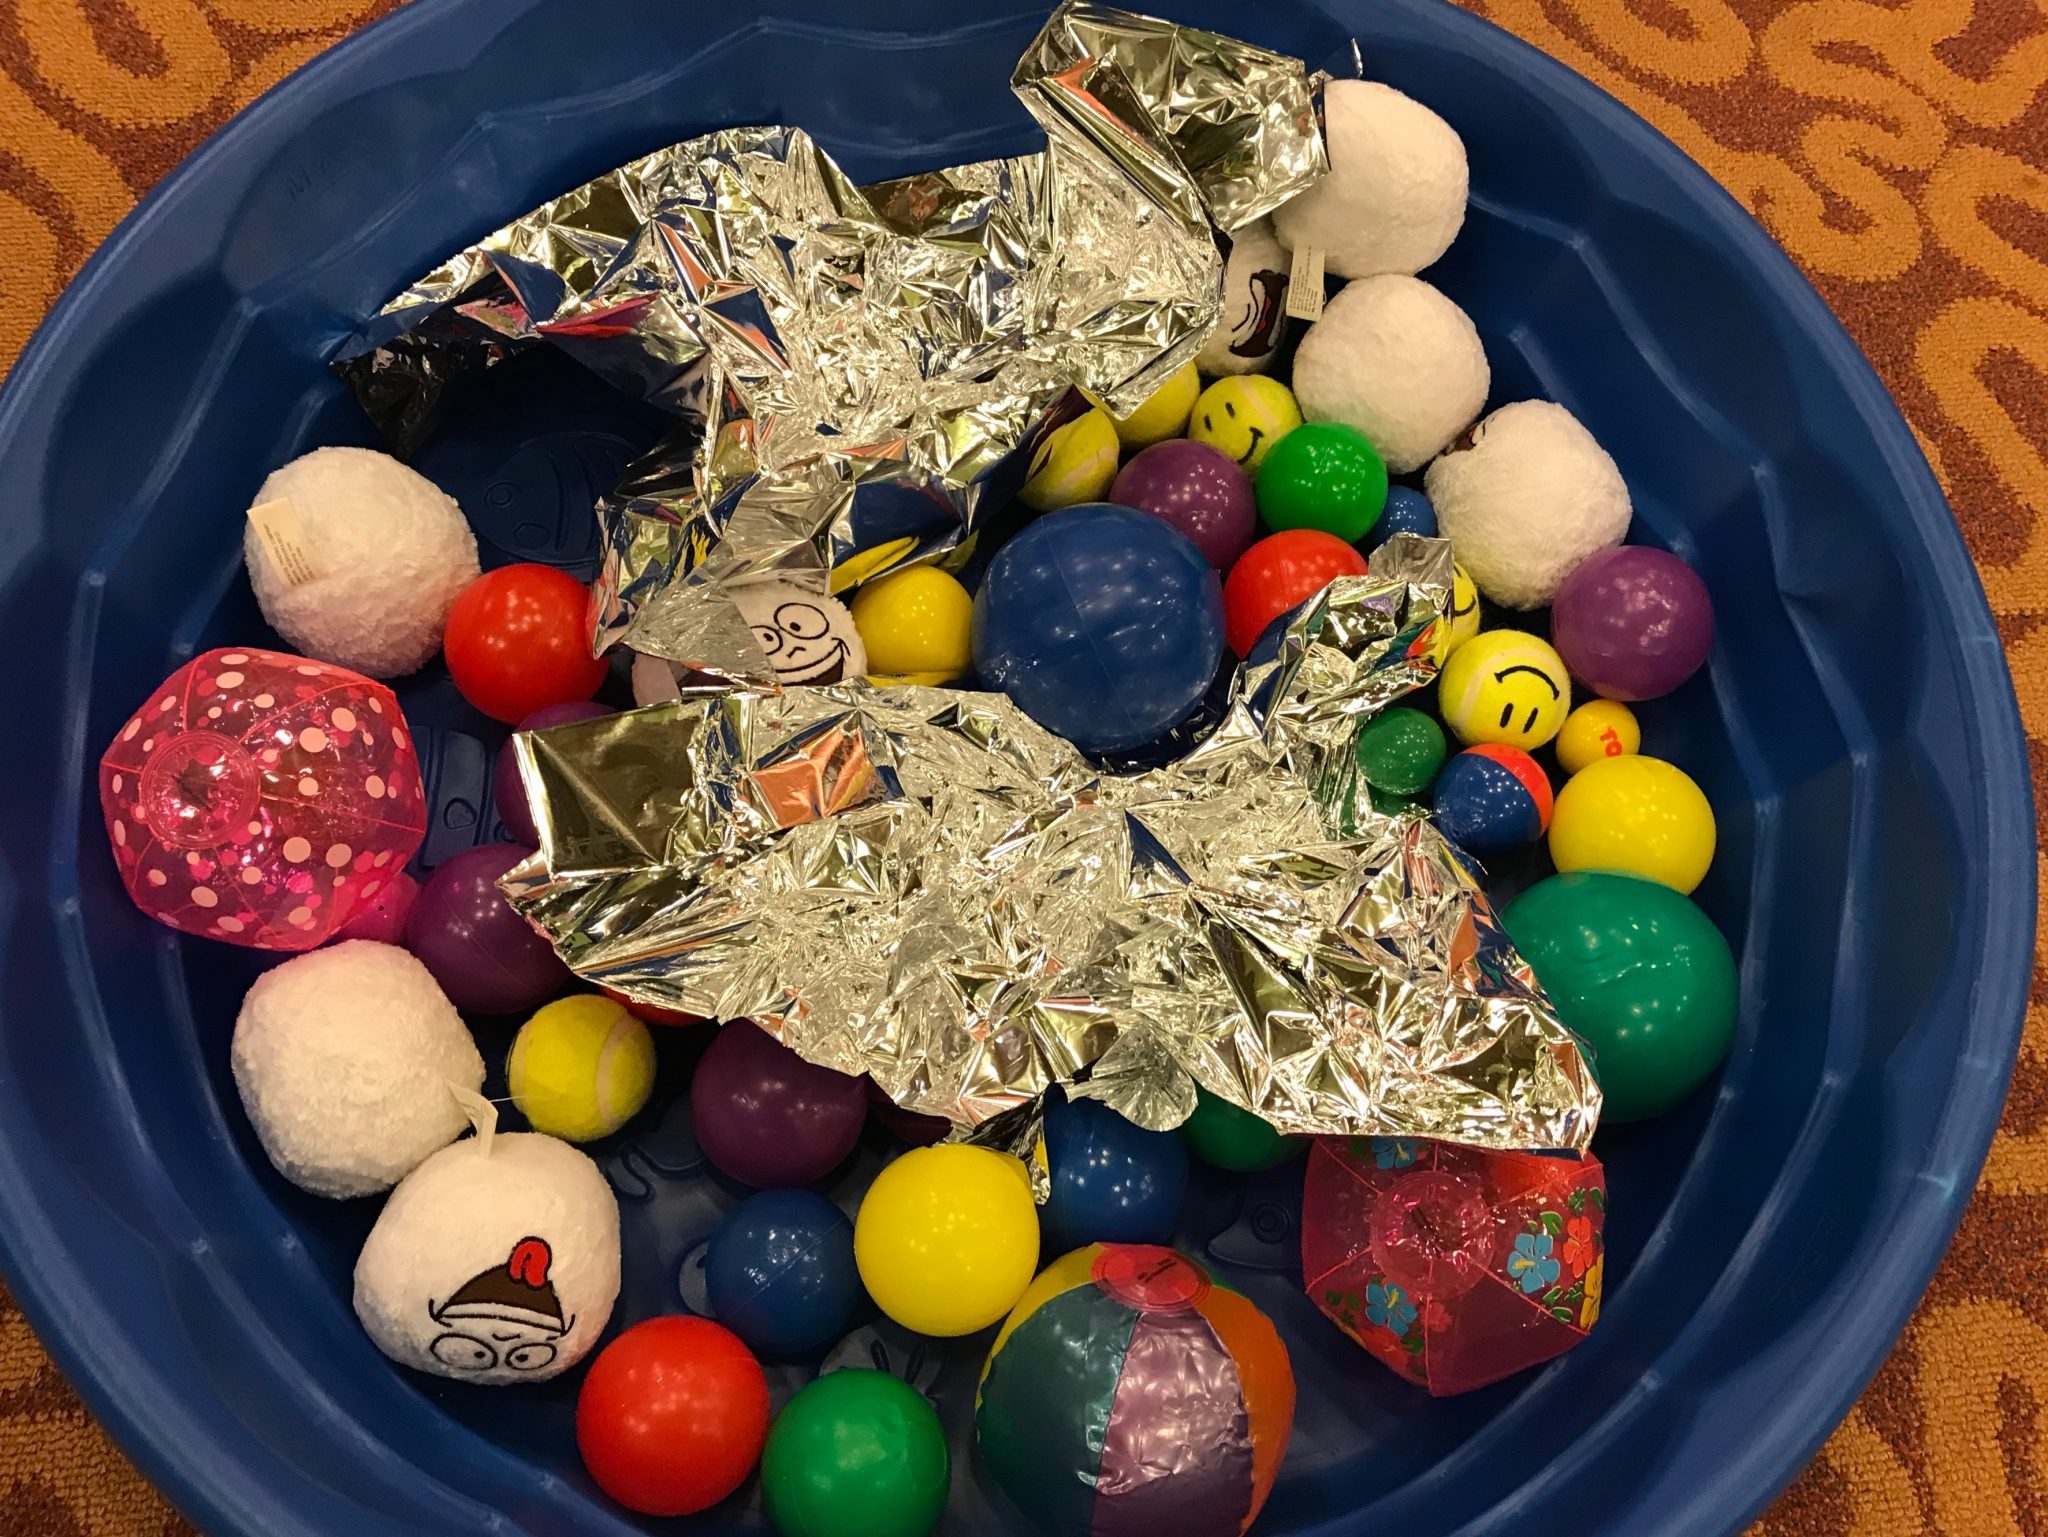 asteroid field ball pit